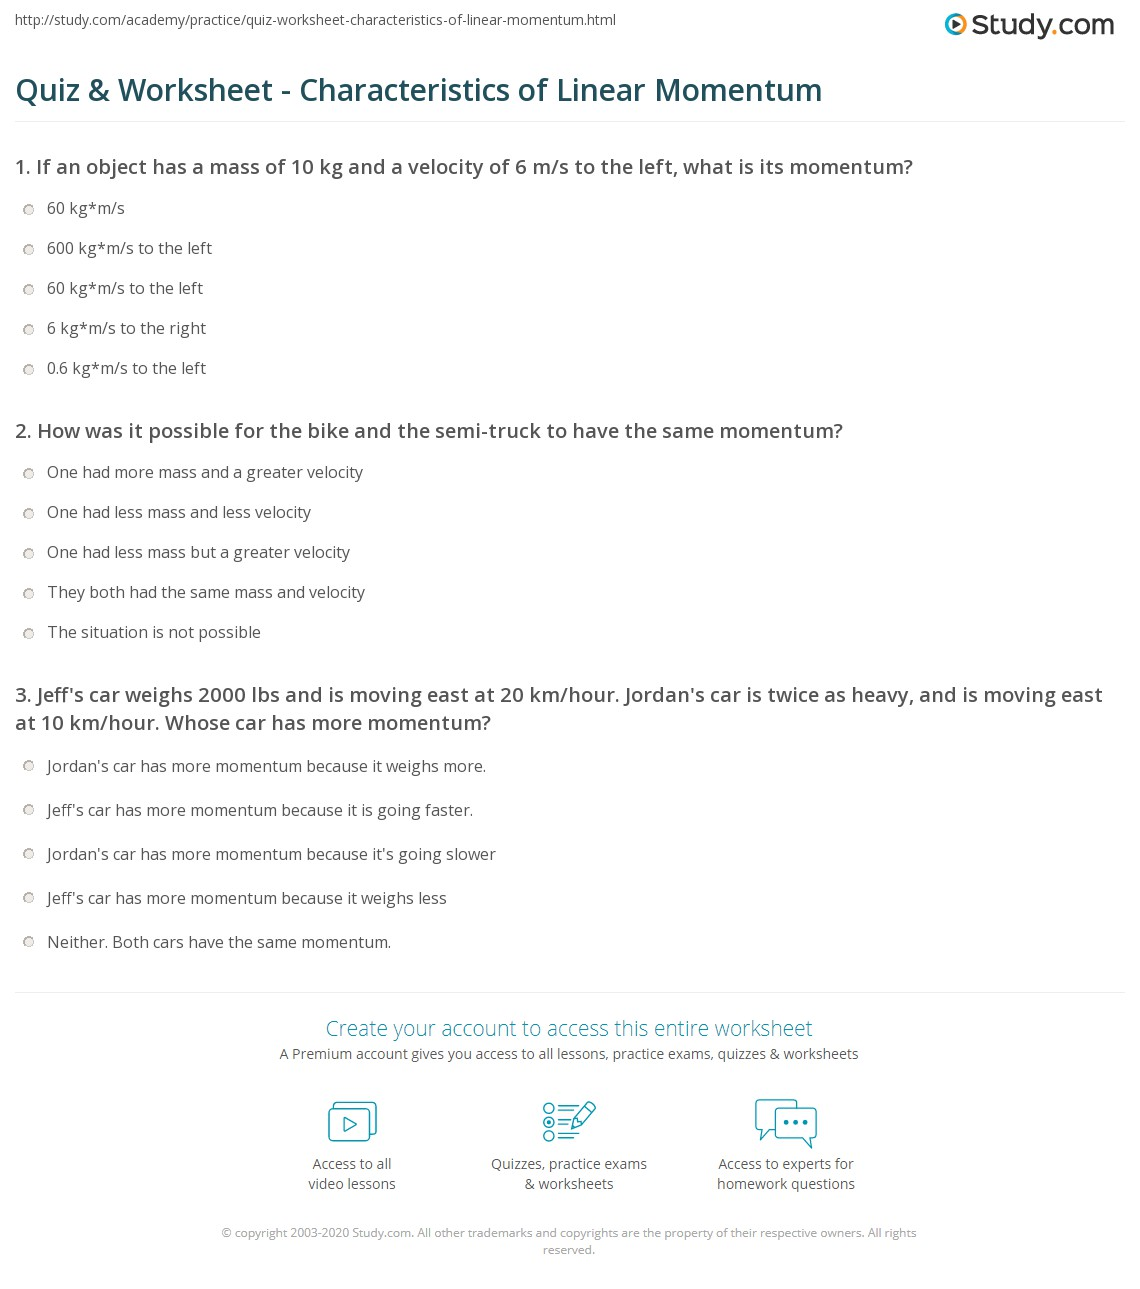 Quiz & Worksheet - Characteristics of Linear Momentum | Study.com